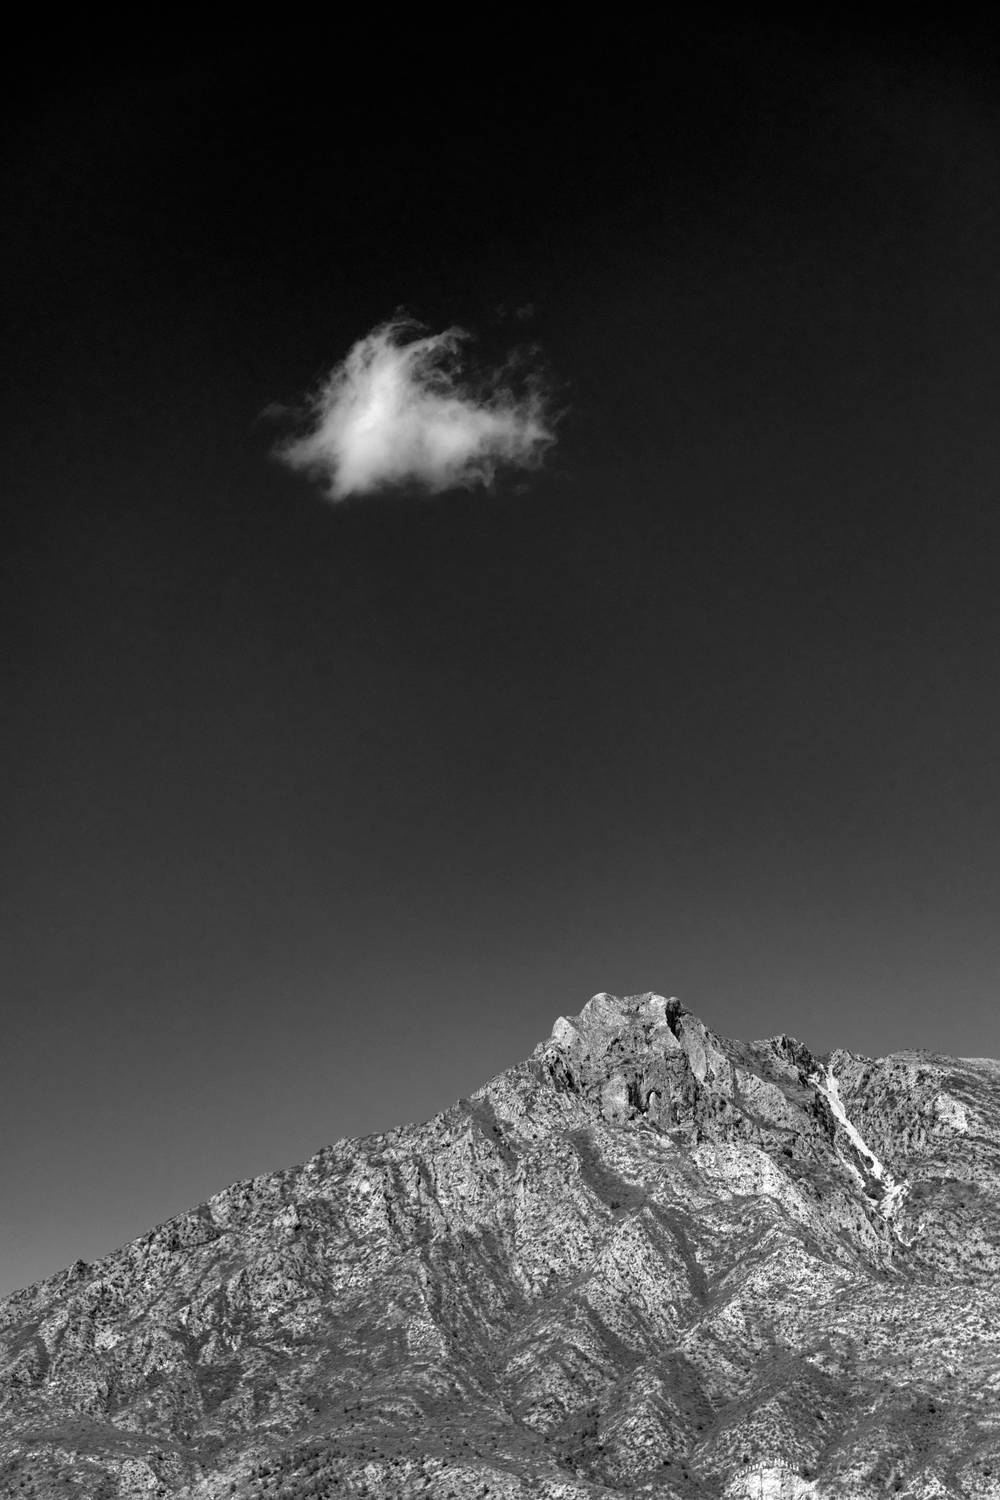 The mountain and the cloud